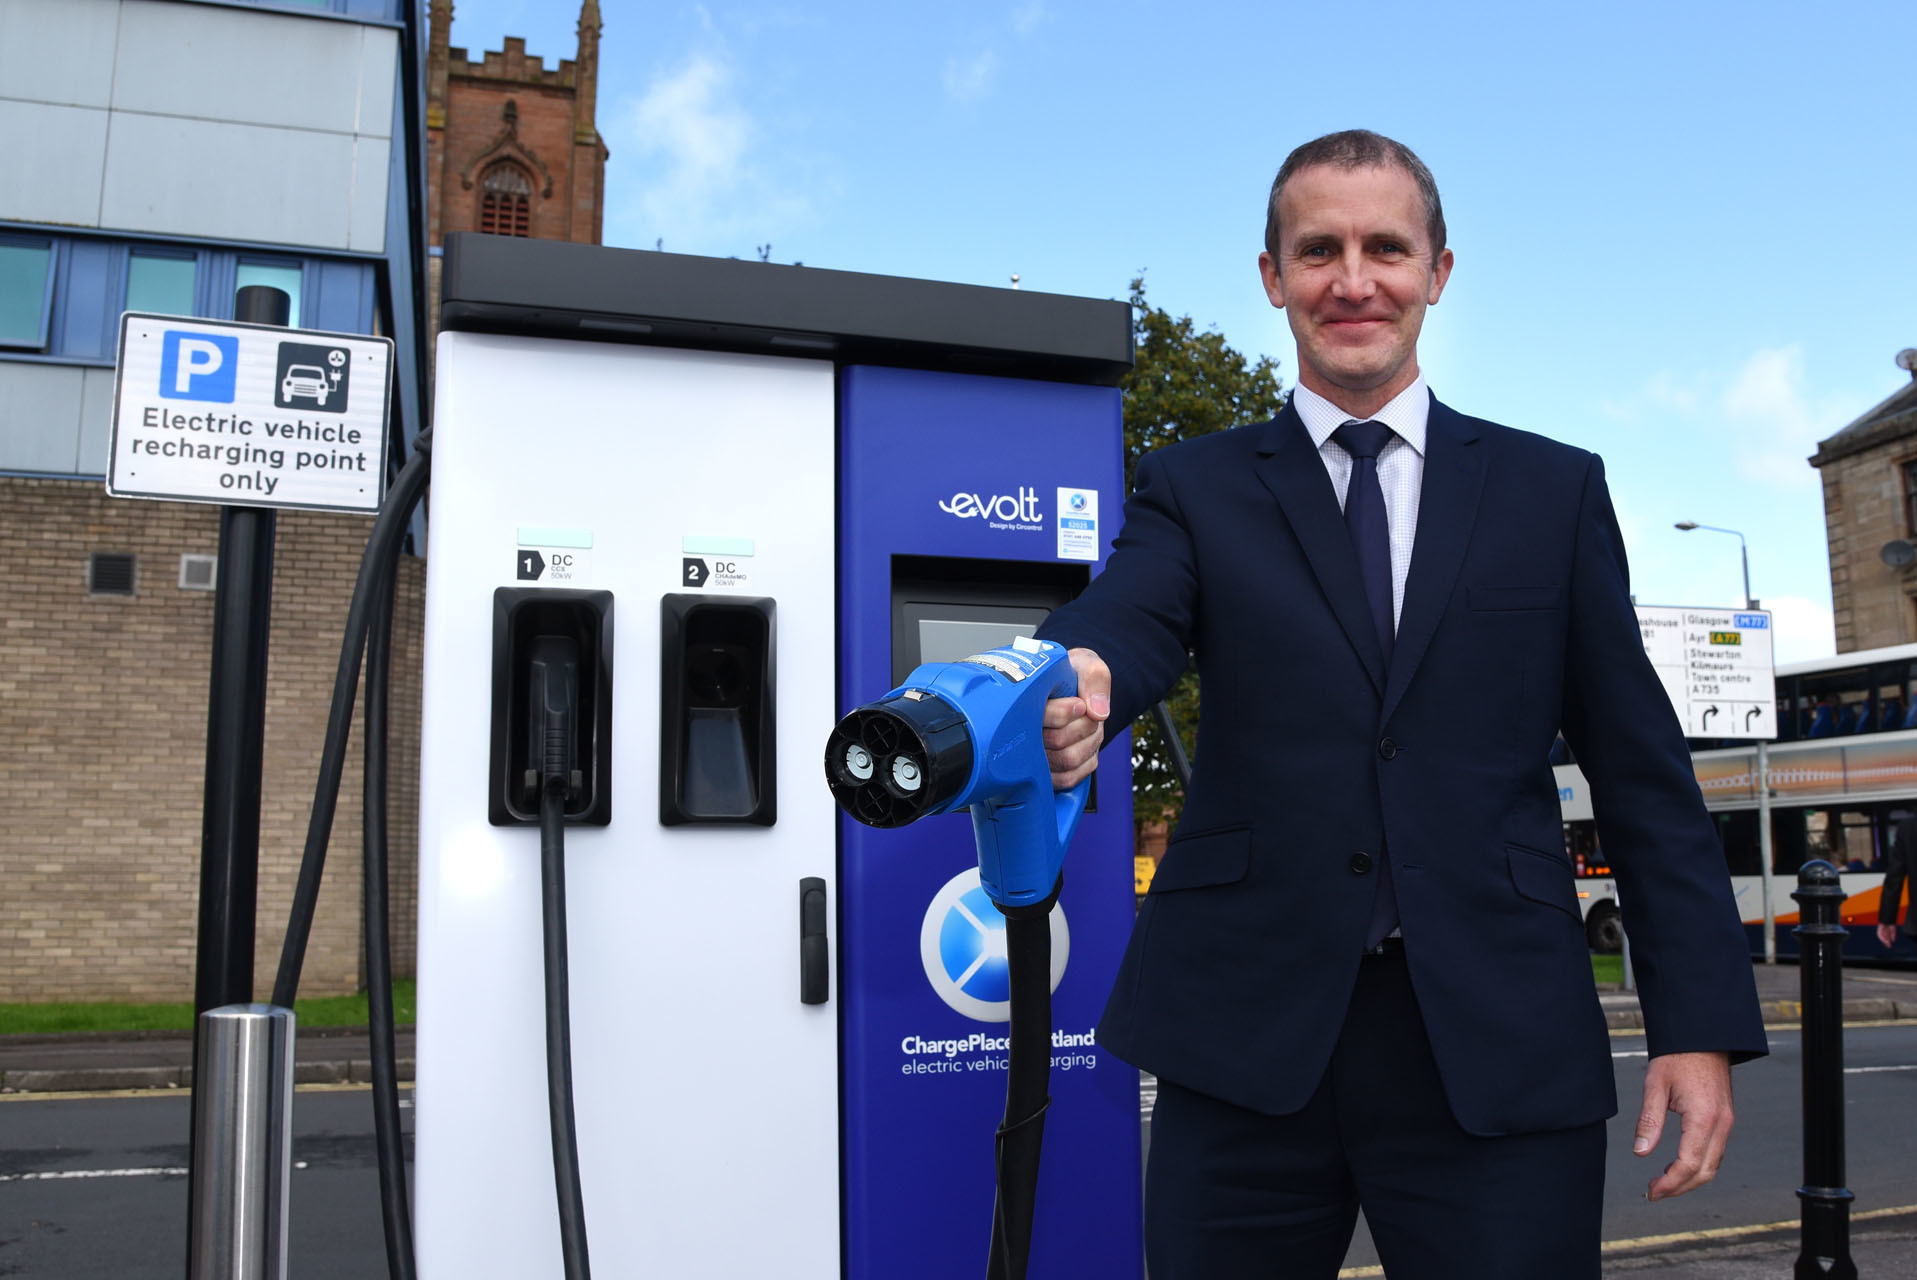 Over 1000 electric vehicle charge points in Scotland